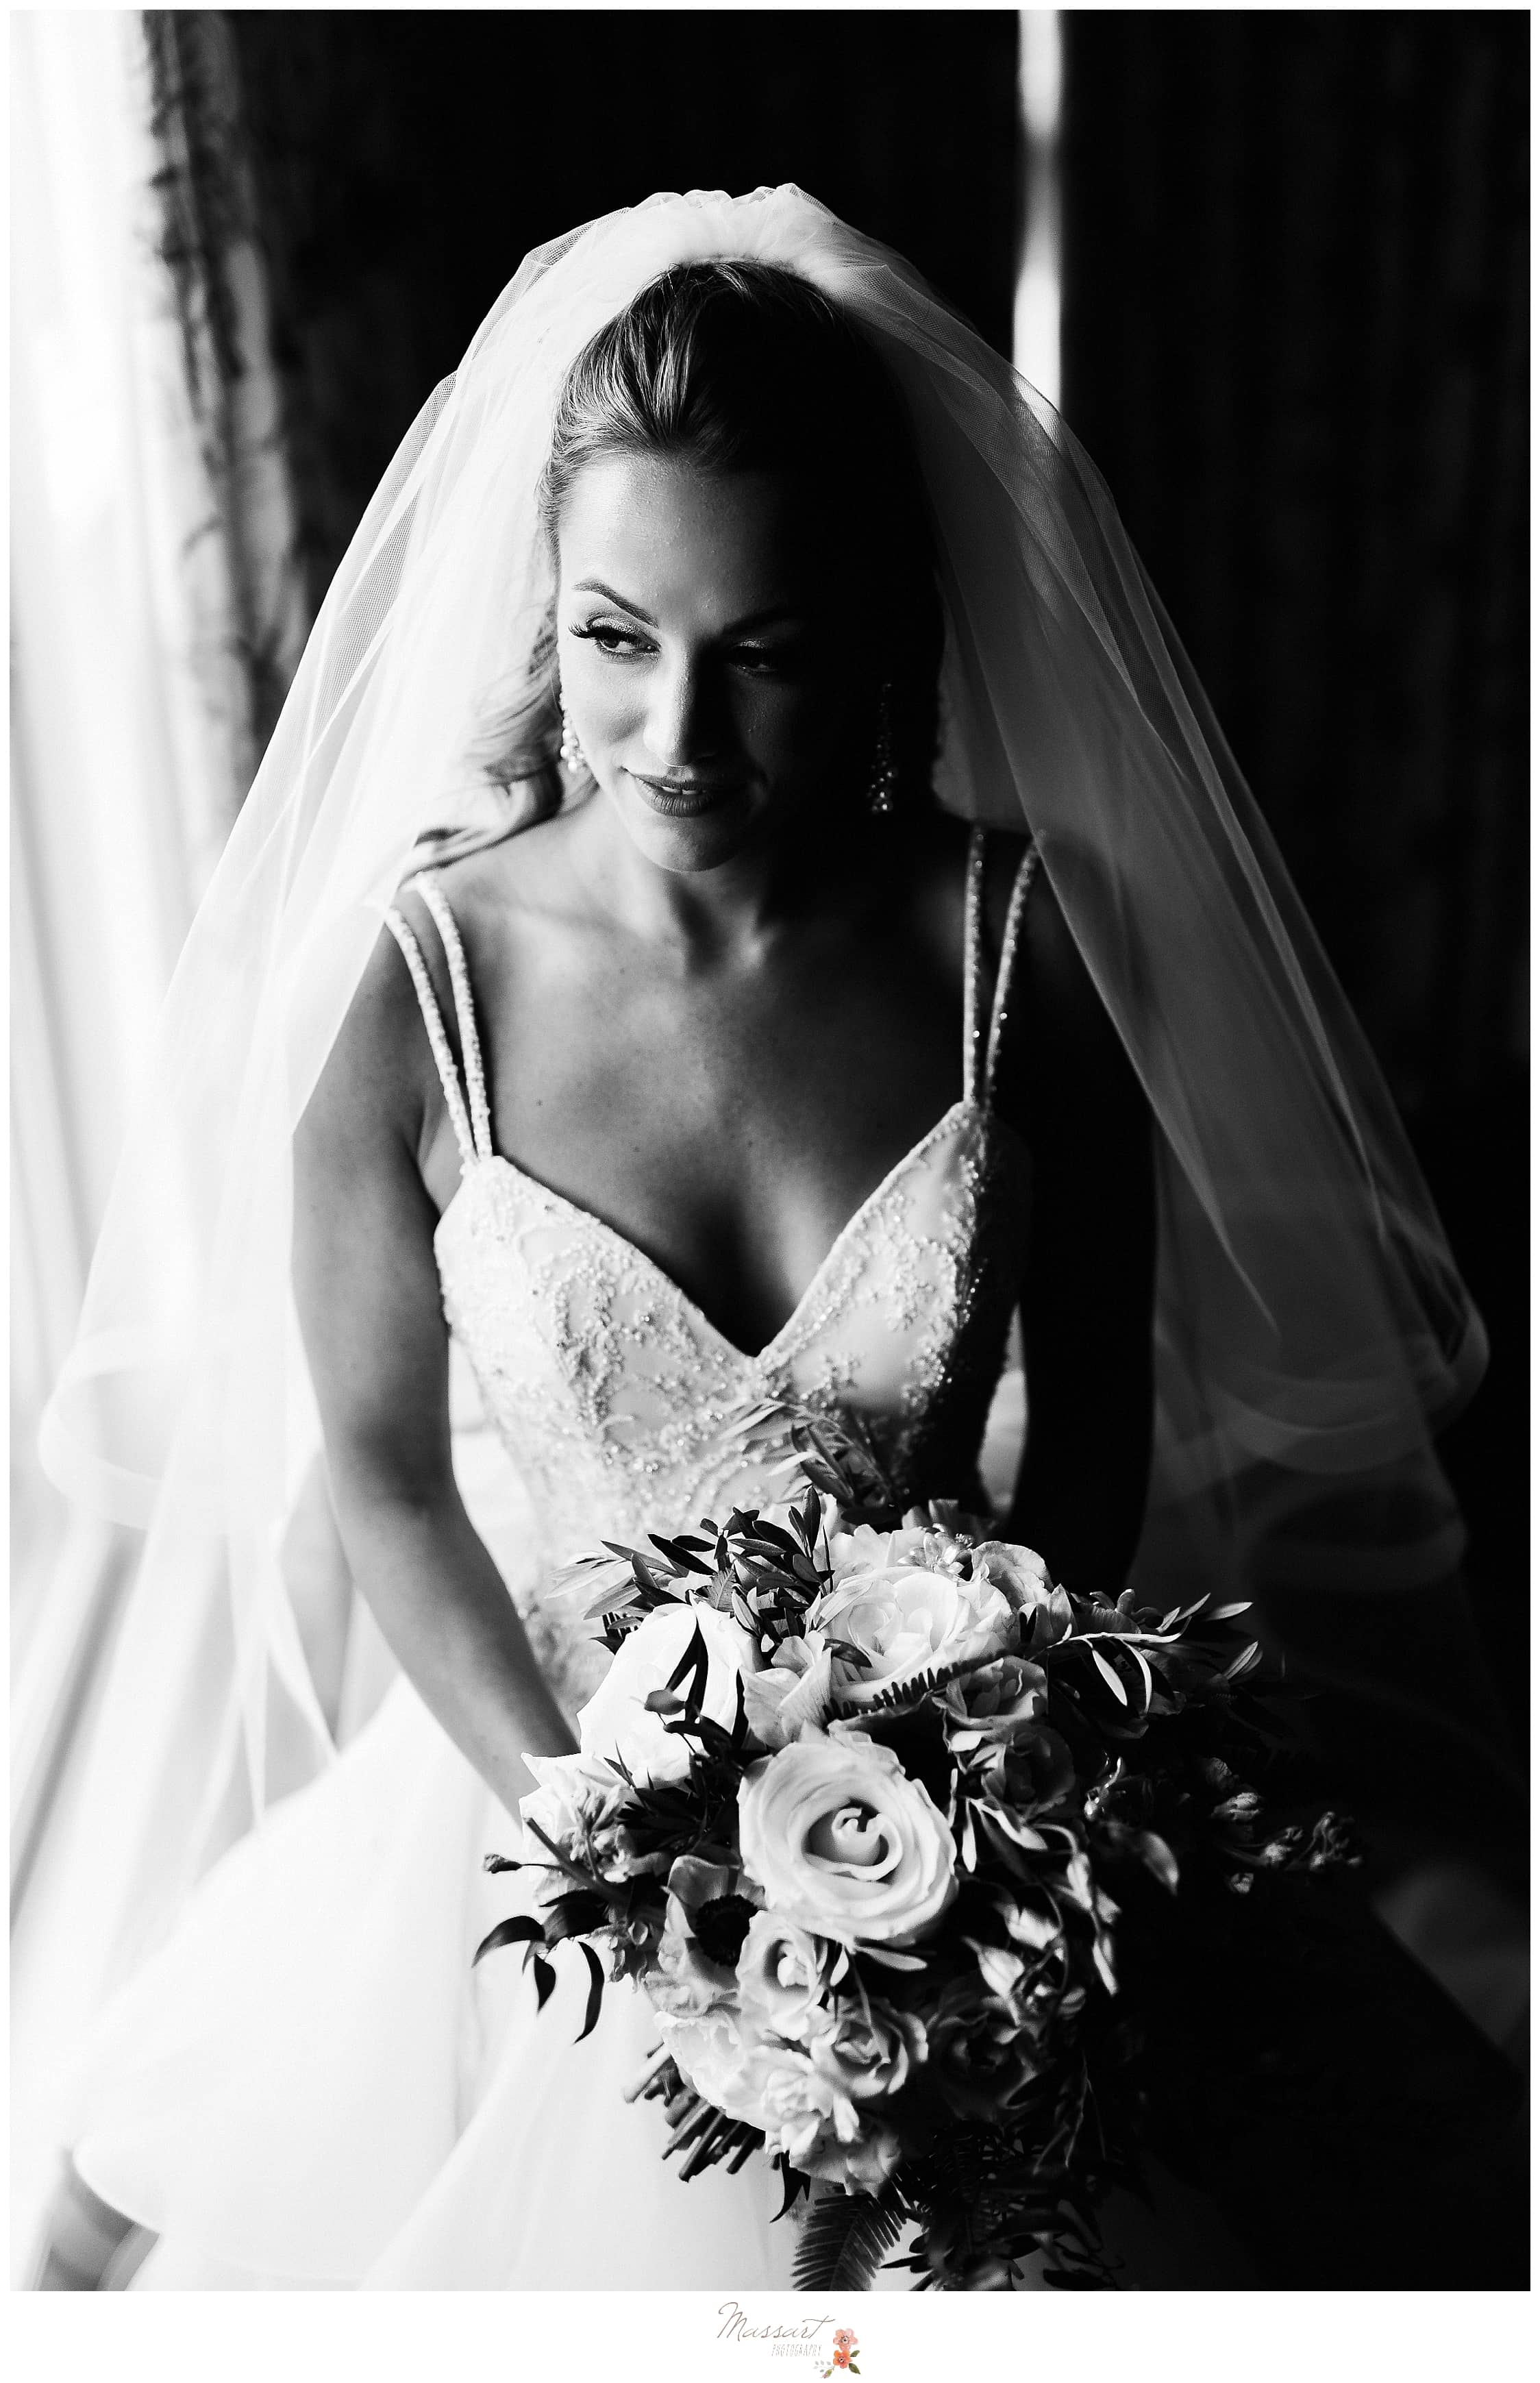 Massart Photography captures classic bridal portrait at Castle Hill Inn in Rhode Island